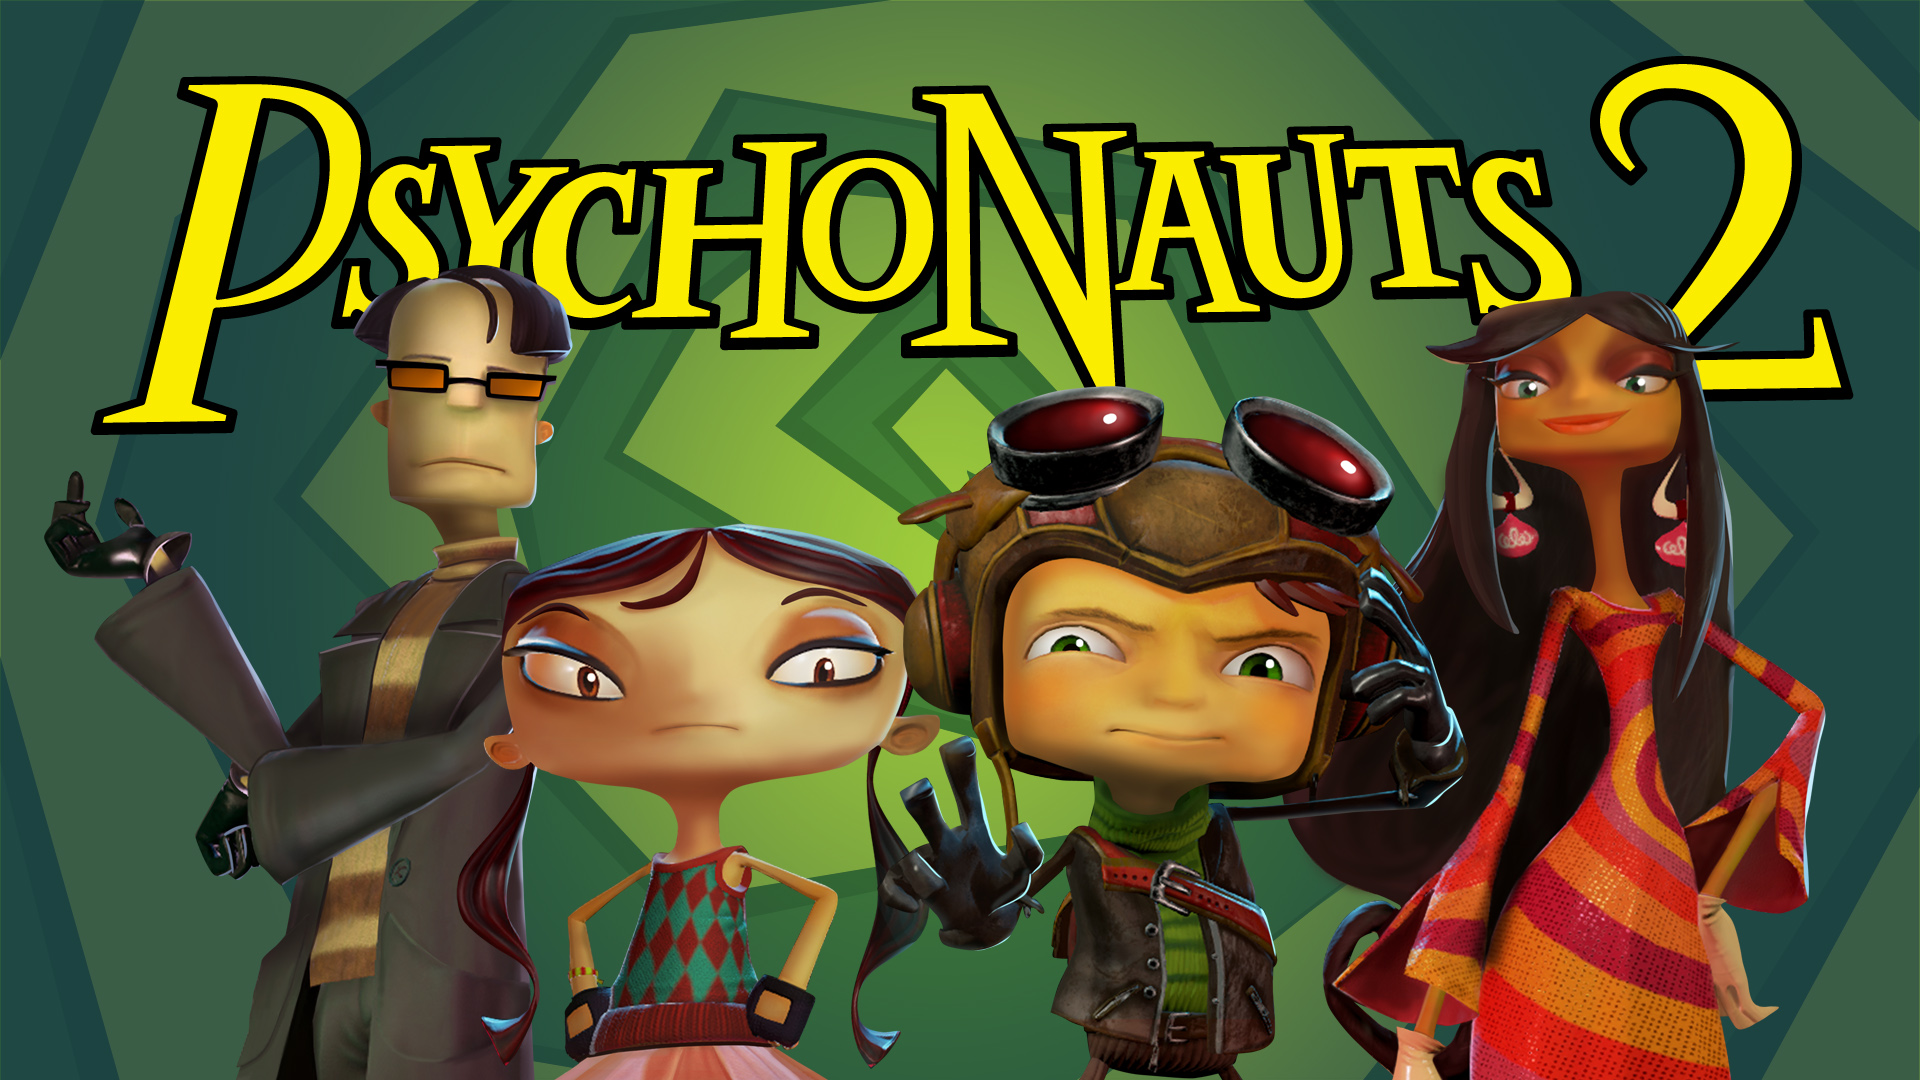 Psychonauts 2 Has Been Delayed For Release In 2020, Fans Are Disappointed But Understand The Developers Decision